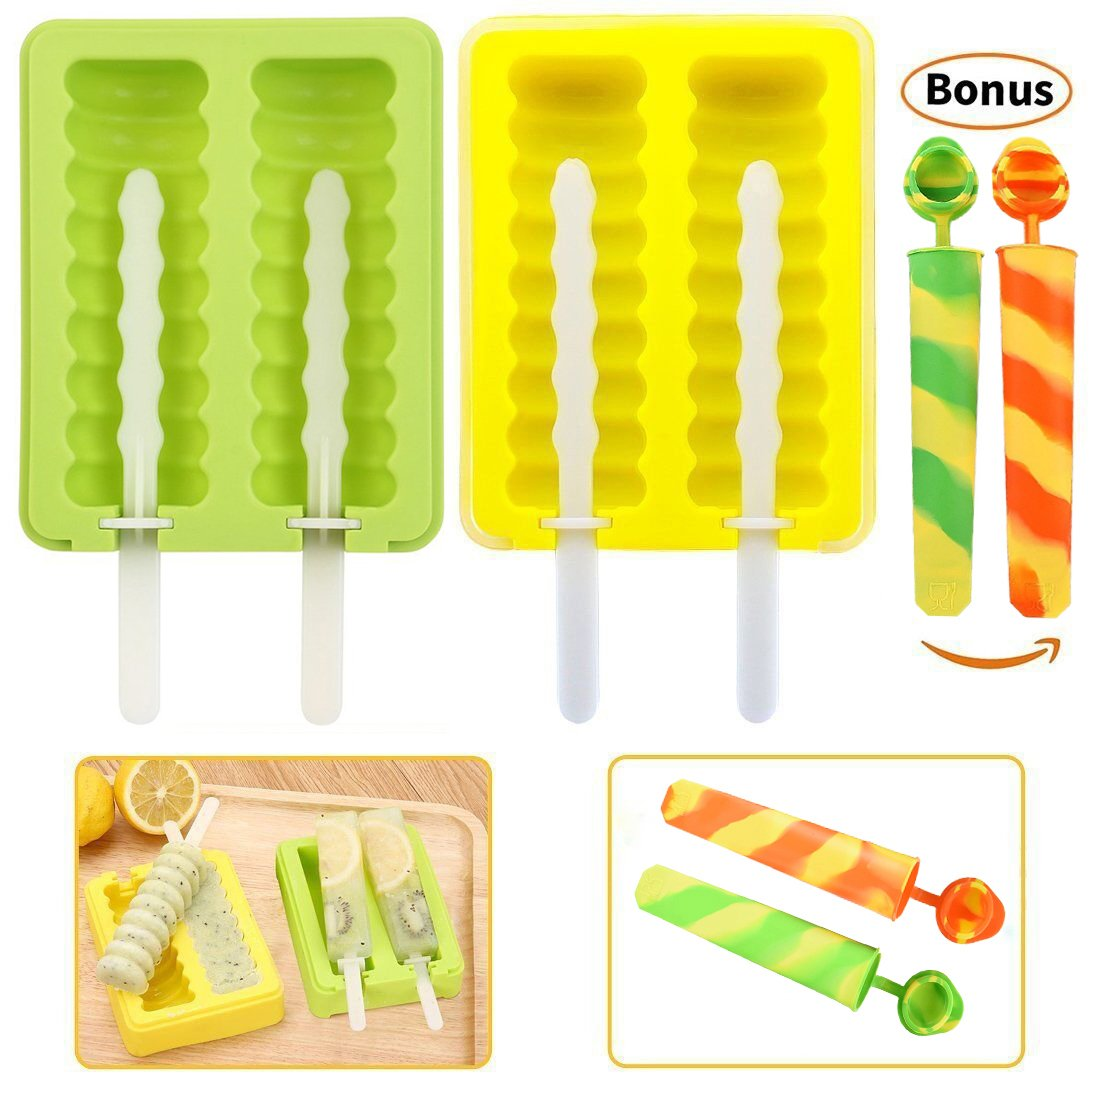 NDHT Ice Lolly Moulds, Silicone Pop Mold Ice Cream Moulds with Lids, Bonus(The bonus' color in random) 2 Ice Pop Moulds,Set of 2